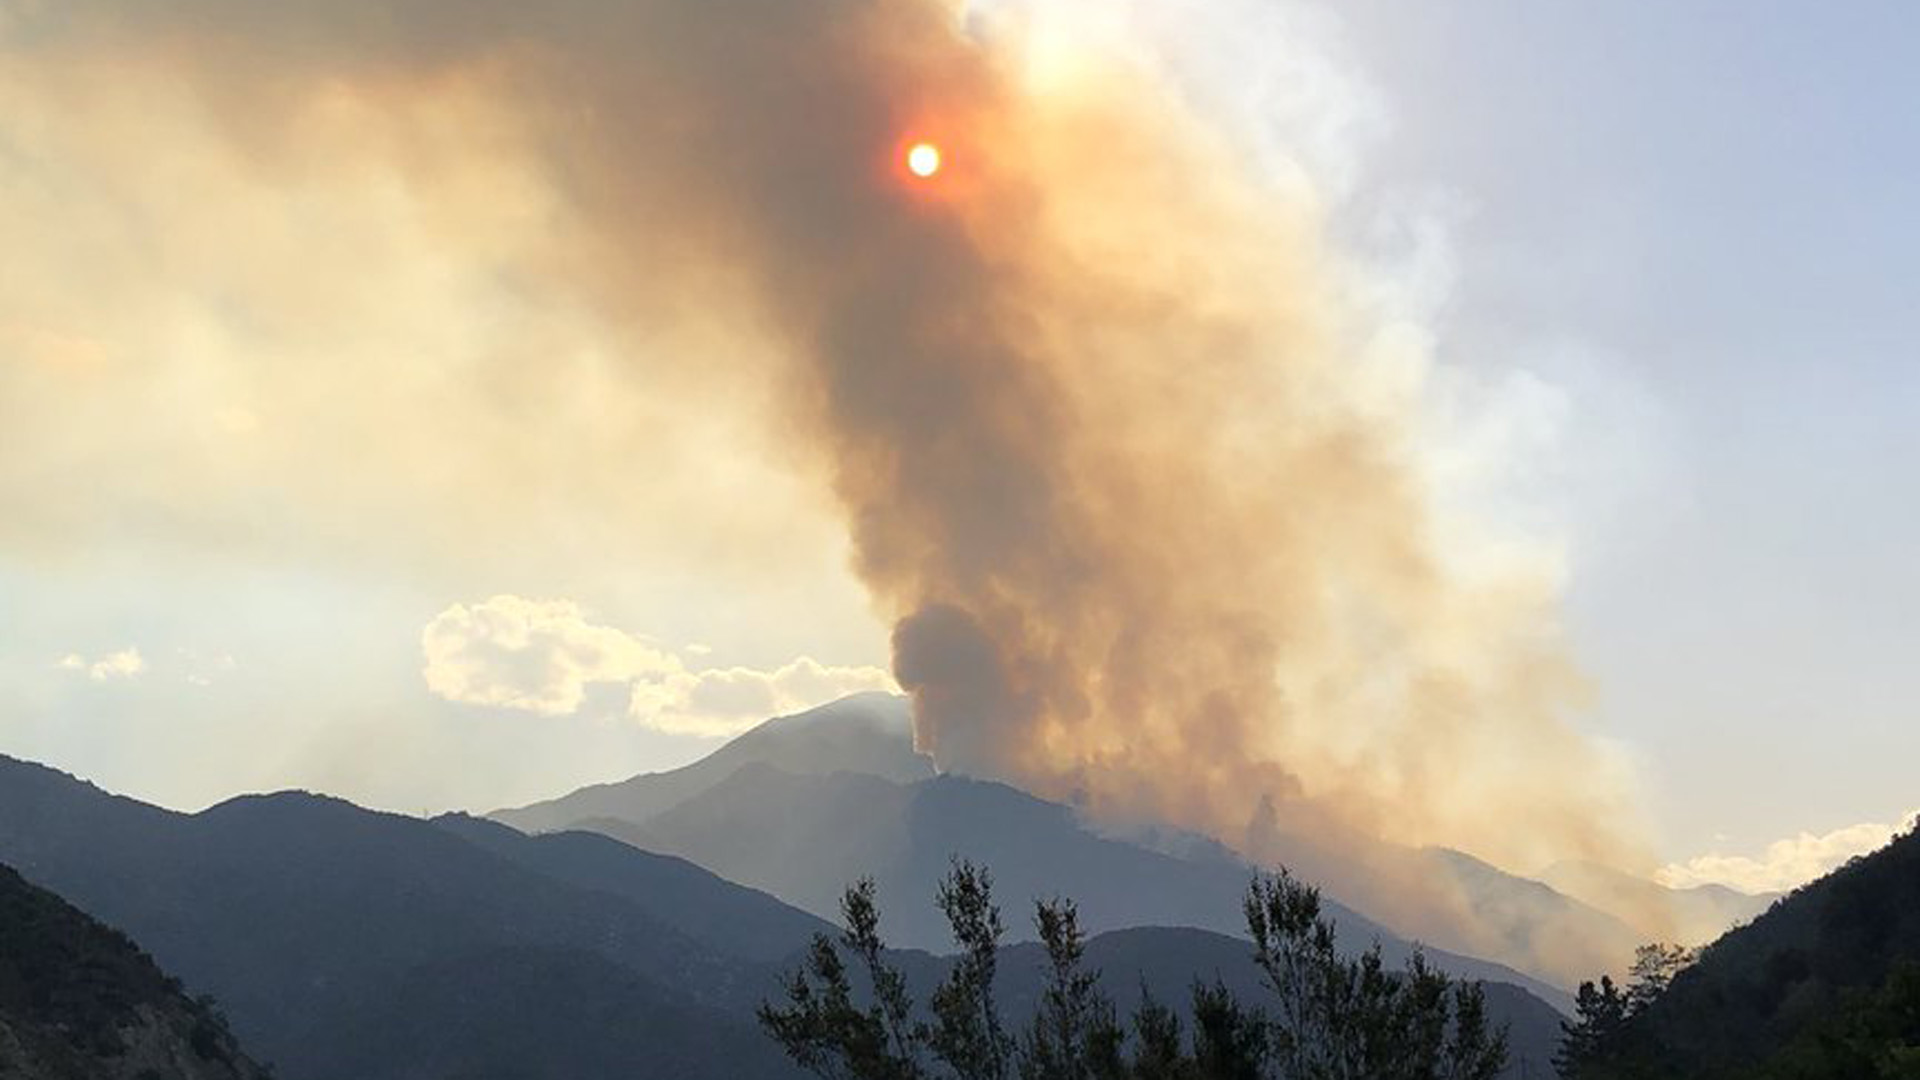 An image tweeted by Cal Fire on July 8, 2018 shows smoke from the Valley Fire in the mountains east of San Bernardino.